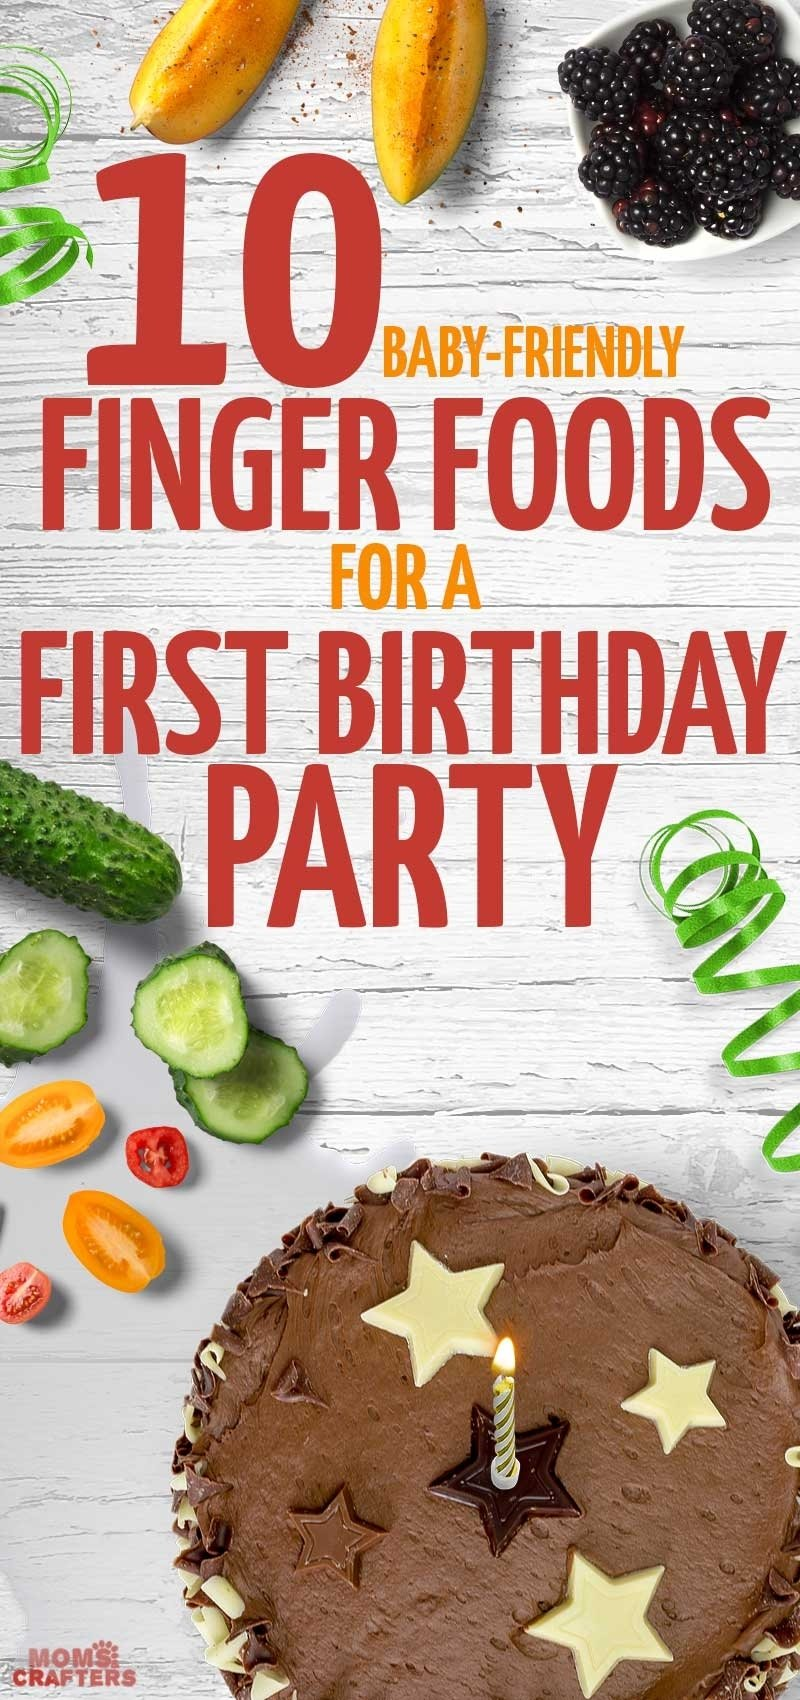 10 Ideal Food Ideas For First Birthday Party 10 great finger foods for a first birthday party moms and crafters 4 2021